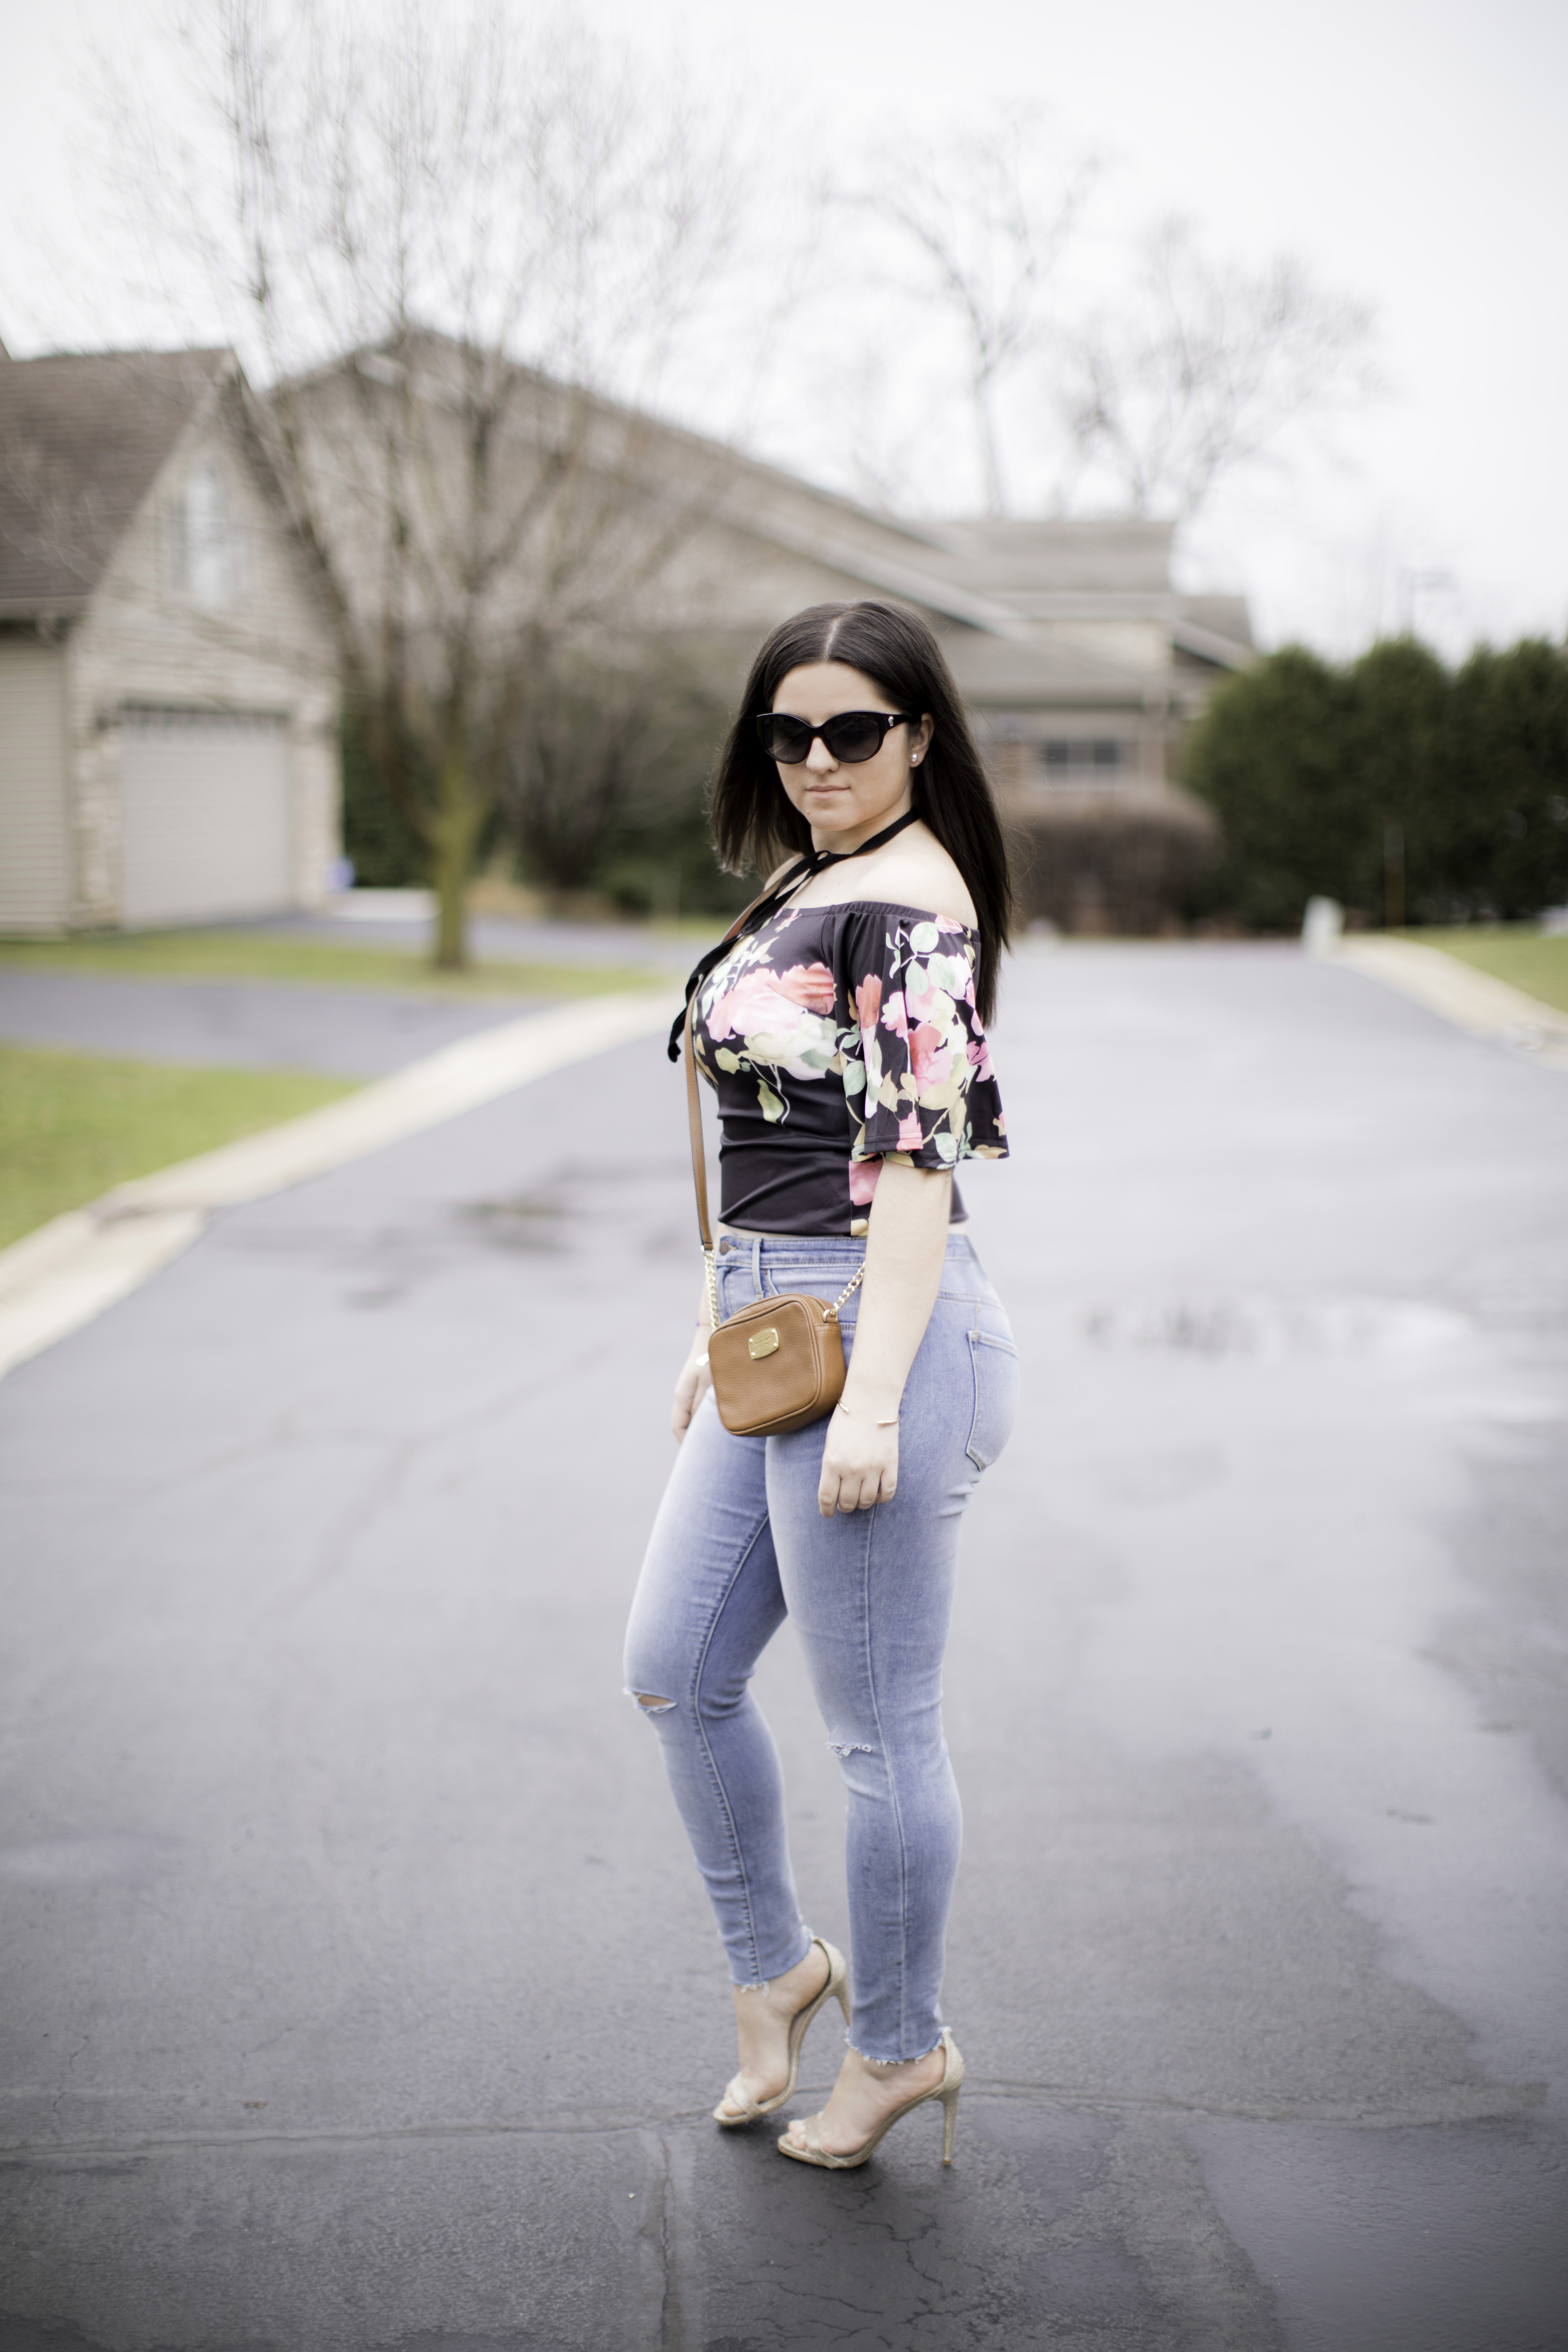 How to style an off the shoulder top for a date nigh, floral top, skinny high waist jeans, bailylamb, chicagoblogger, rockfordblogger